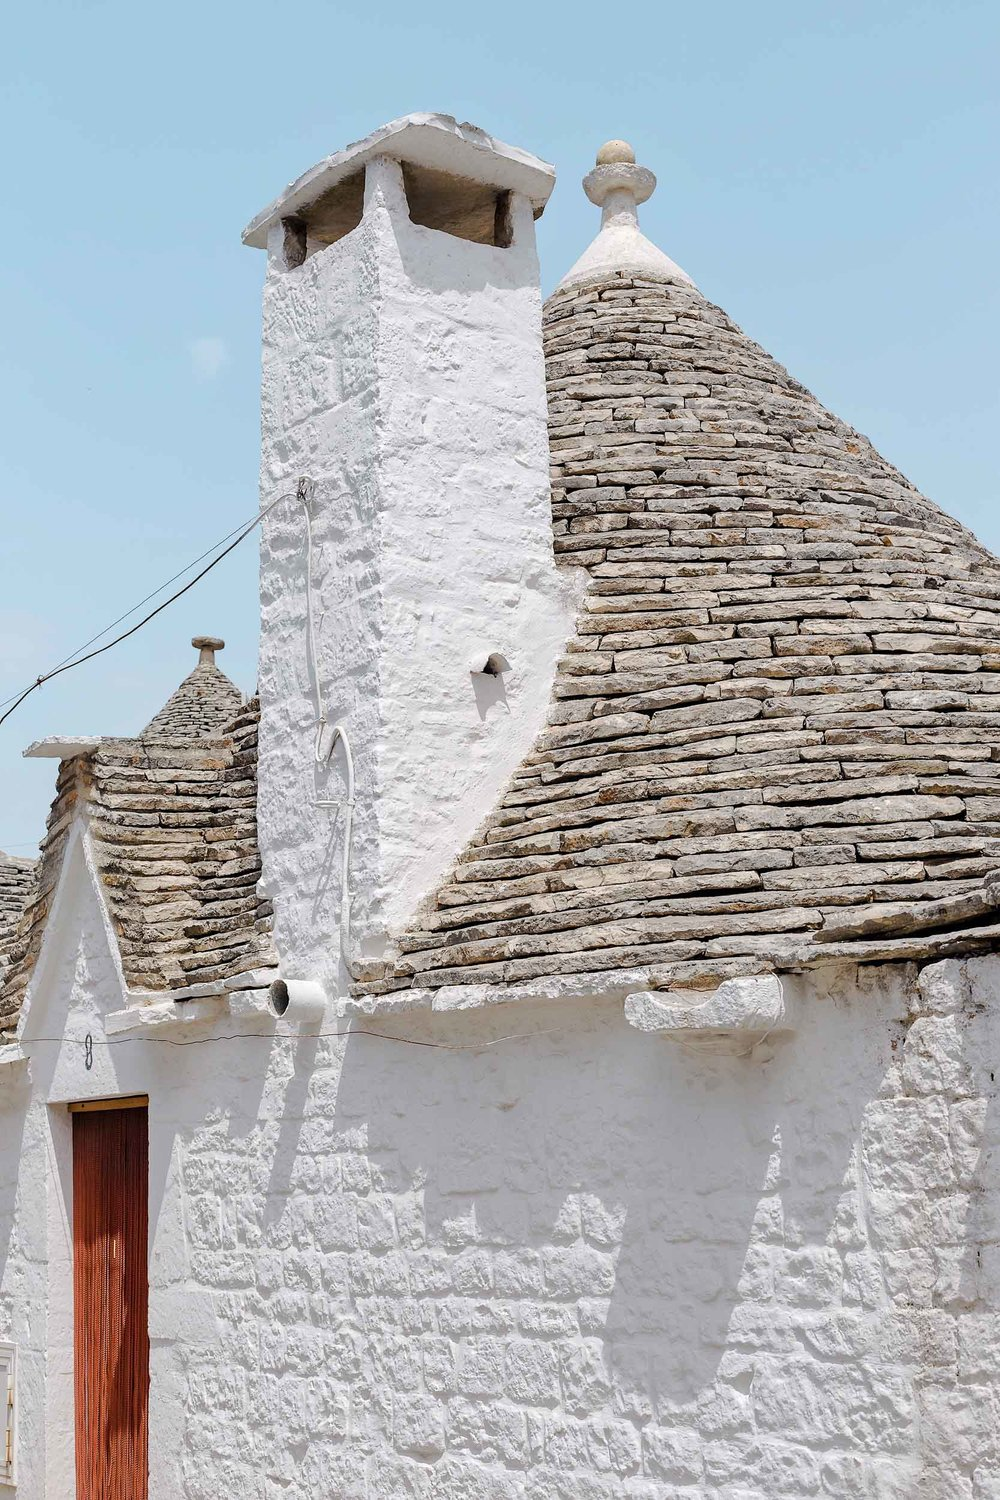 Trullo buildings in Alberobello, Puglia, Italy